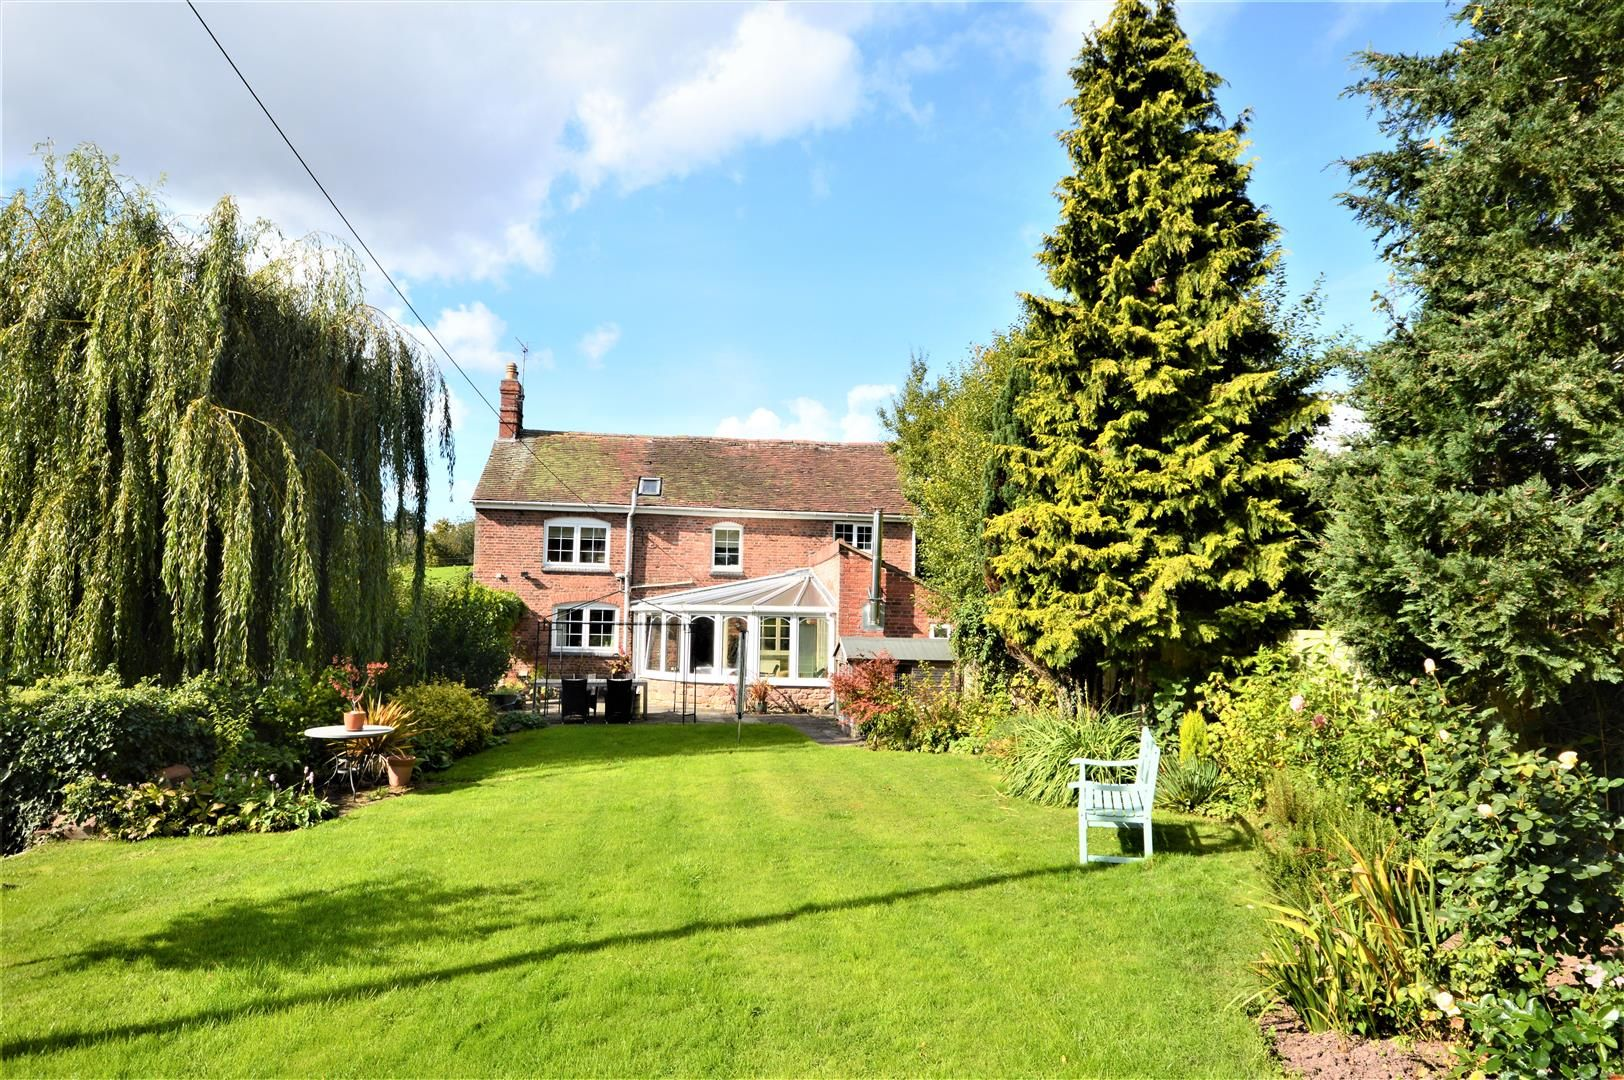 3 bed detached for sale in Burghill, HR4